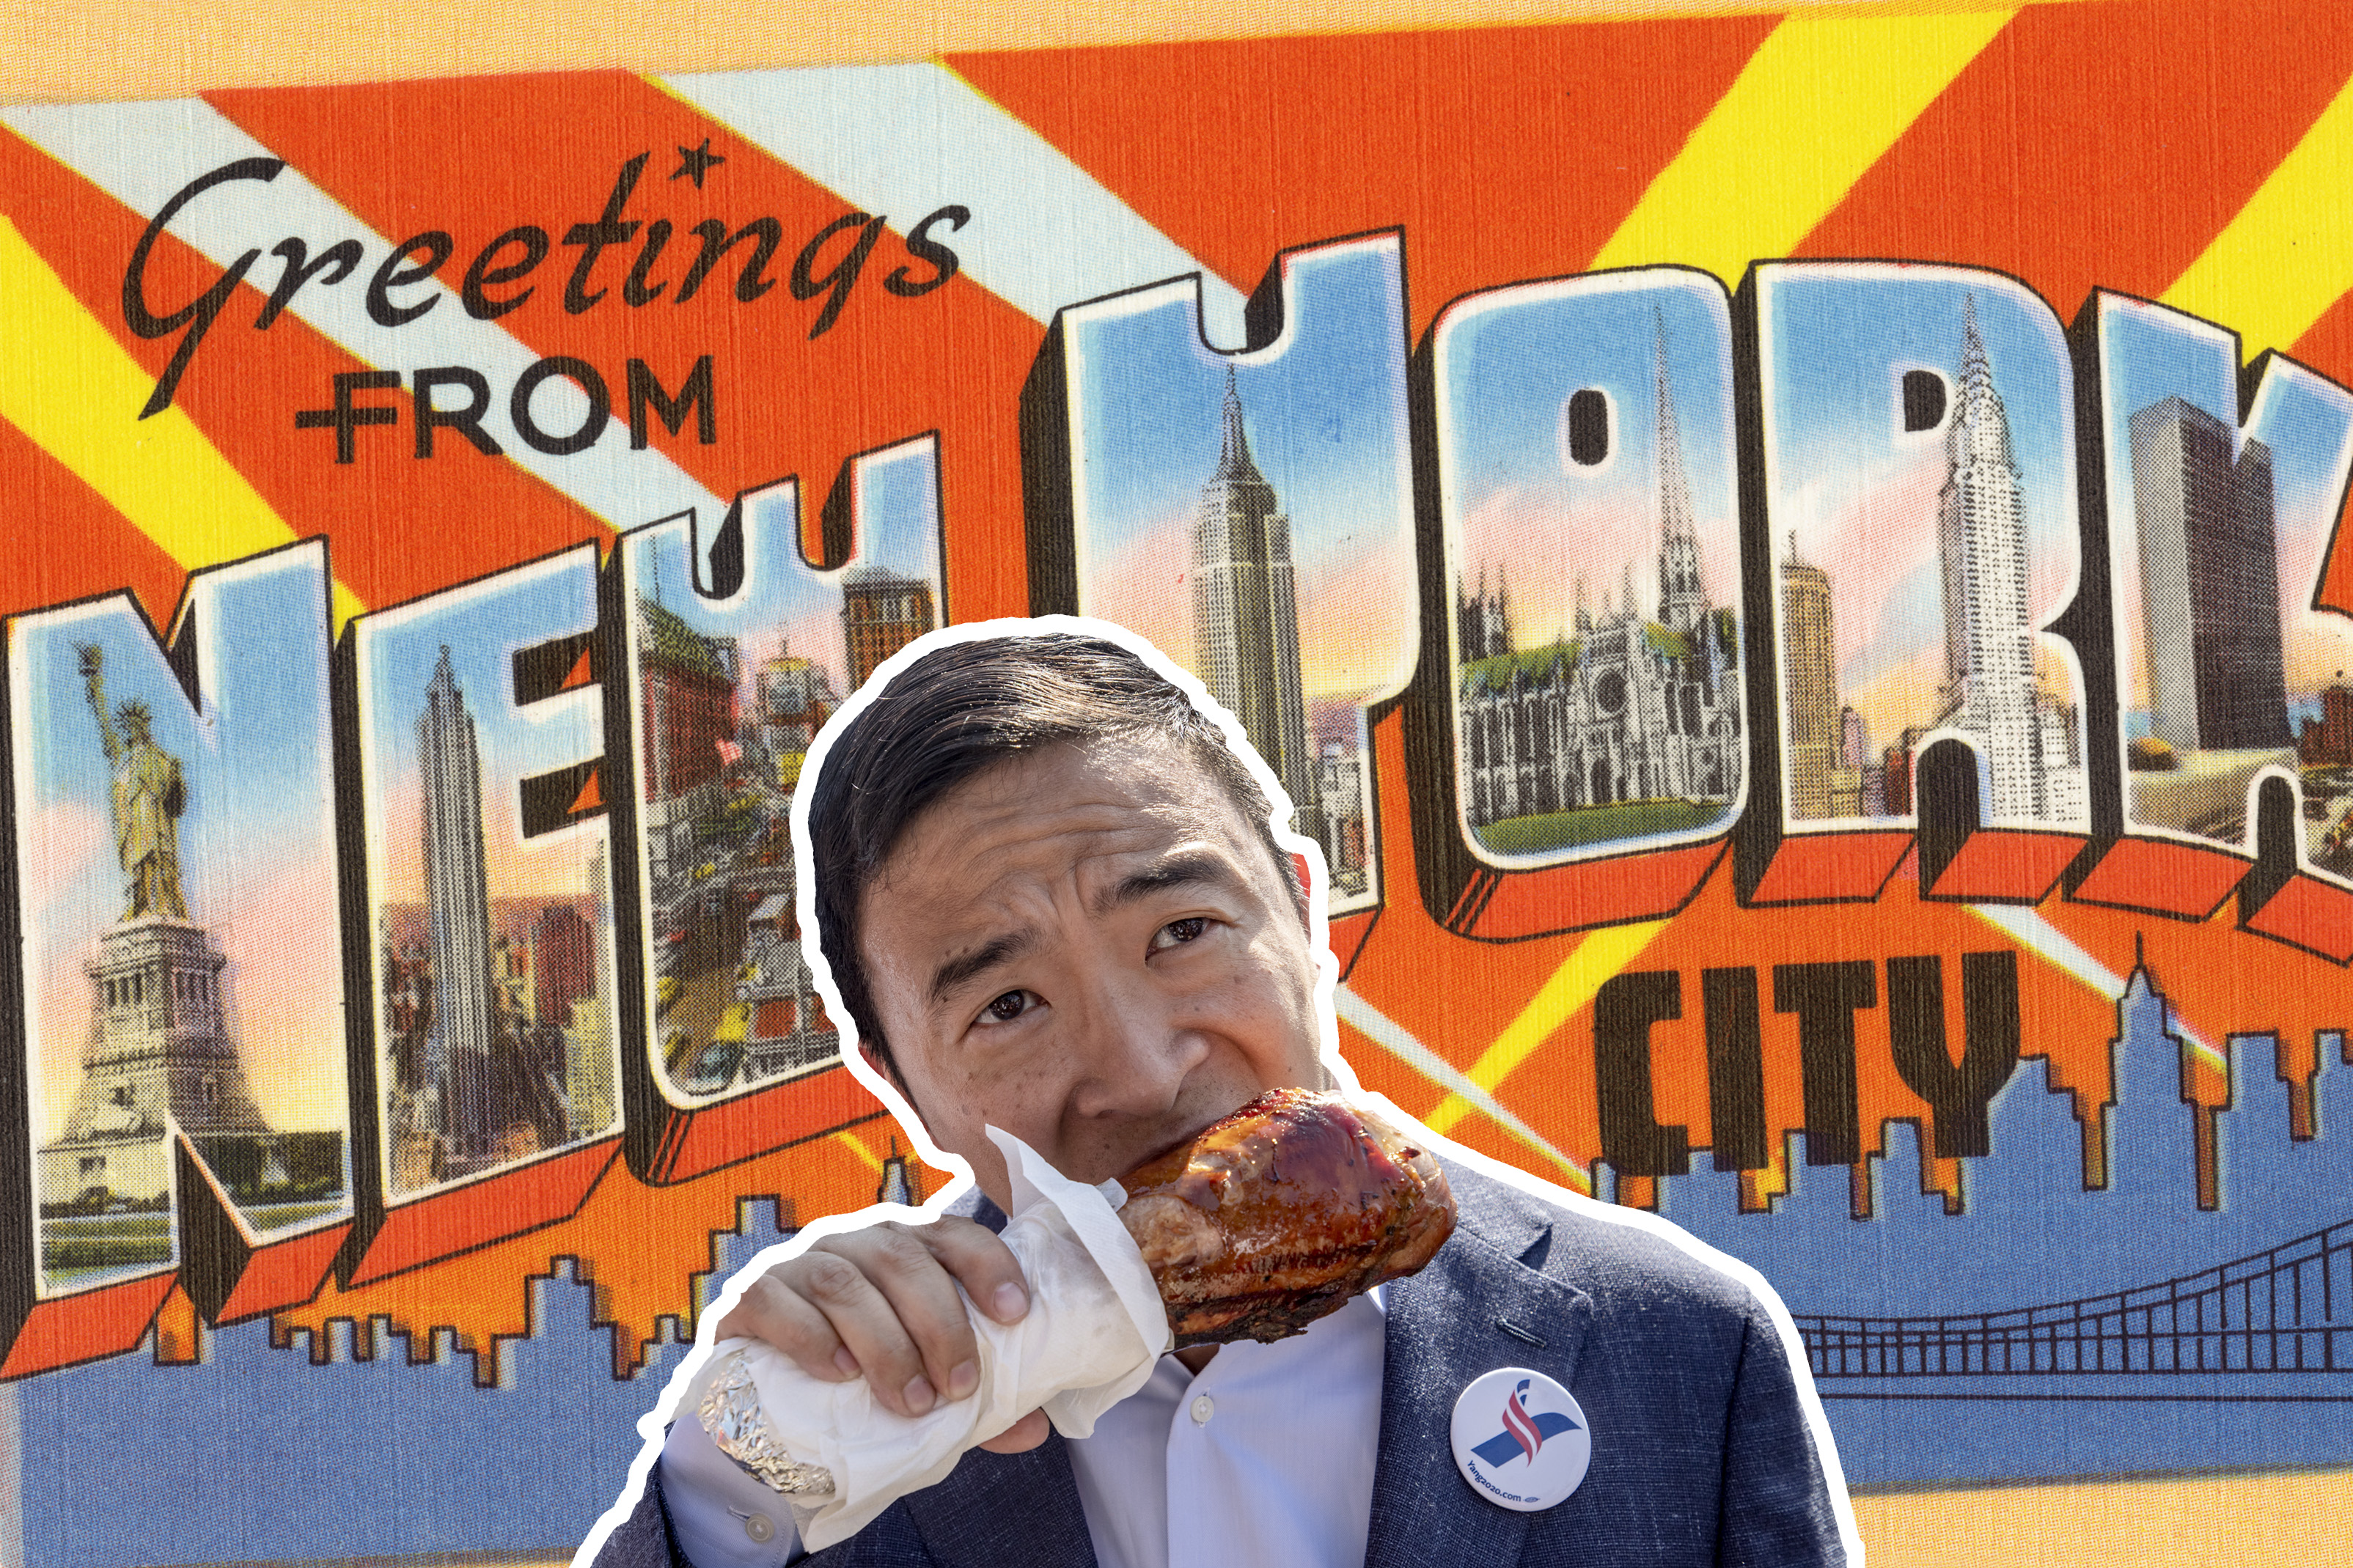 """Andrew Yang eats a turkey leg in front of a backdrop that says """"Greetings from New York City"""""""